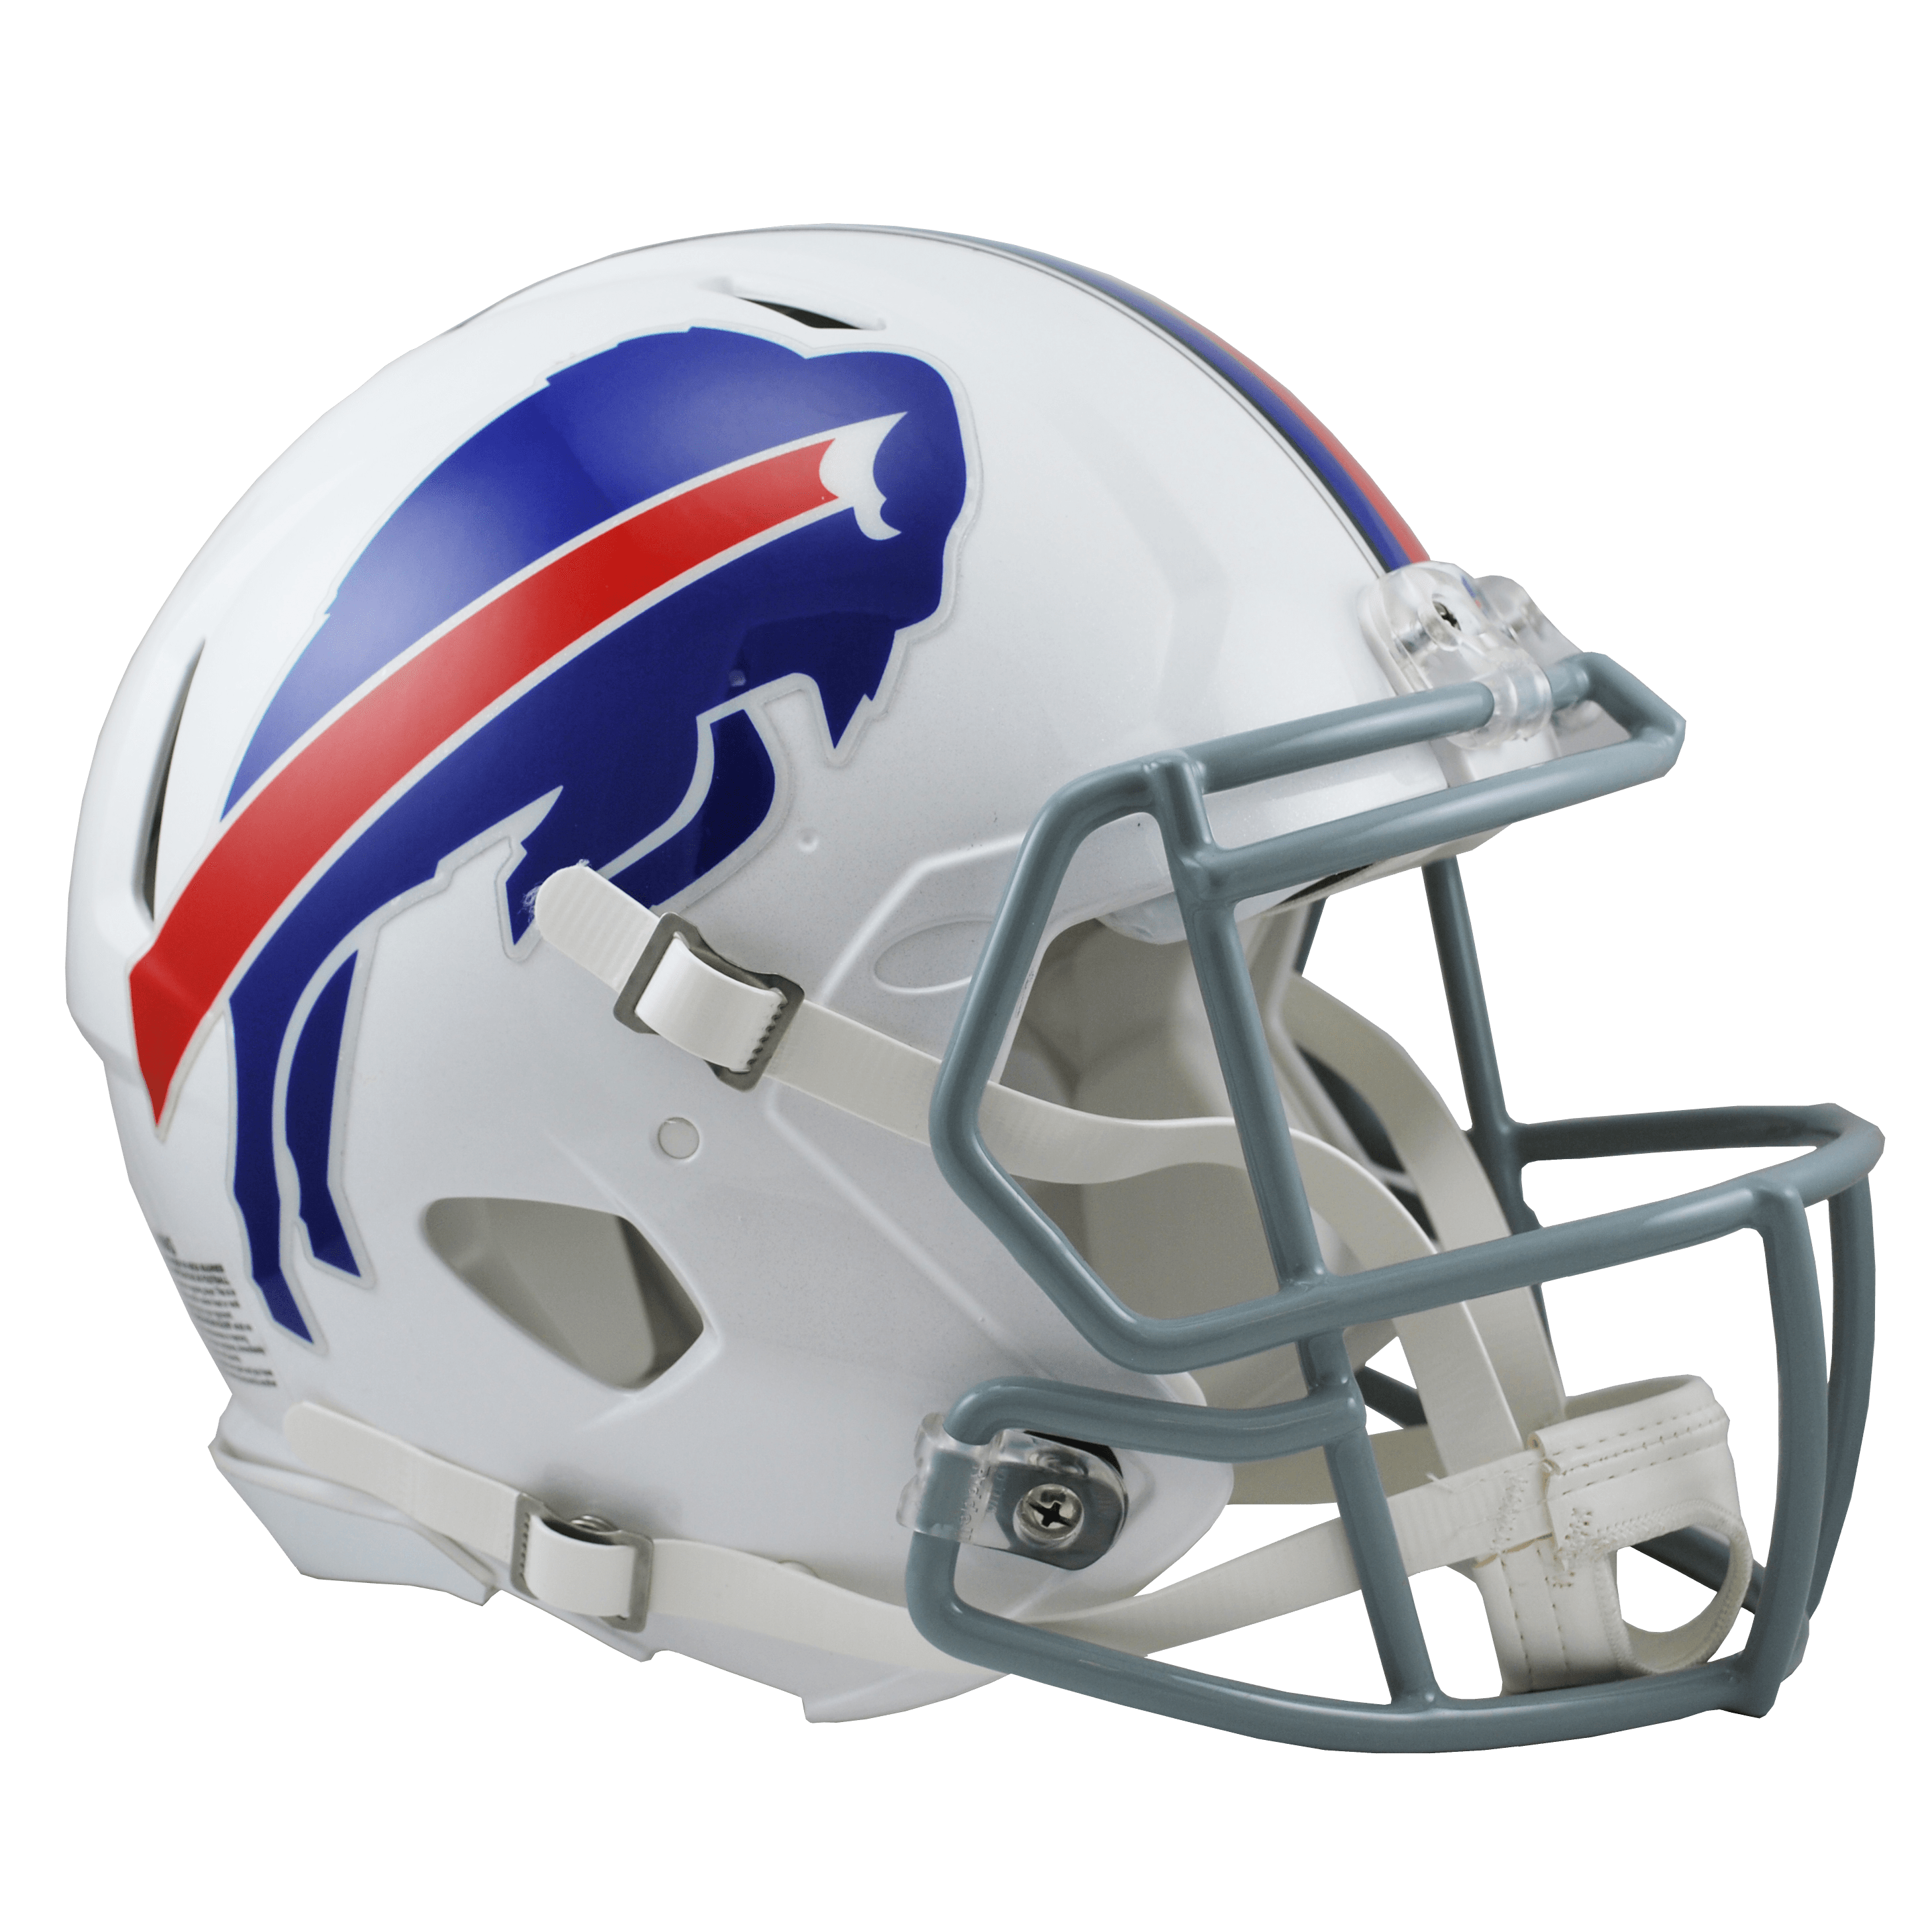 Buffalo bills football clipart clipart library Buffalo Bills Helmet transparent PNG - StickPNG clipart library